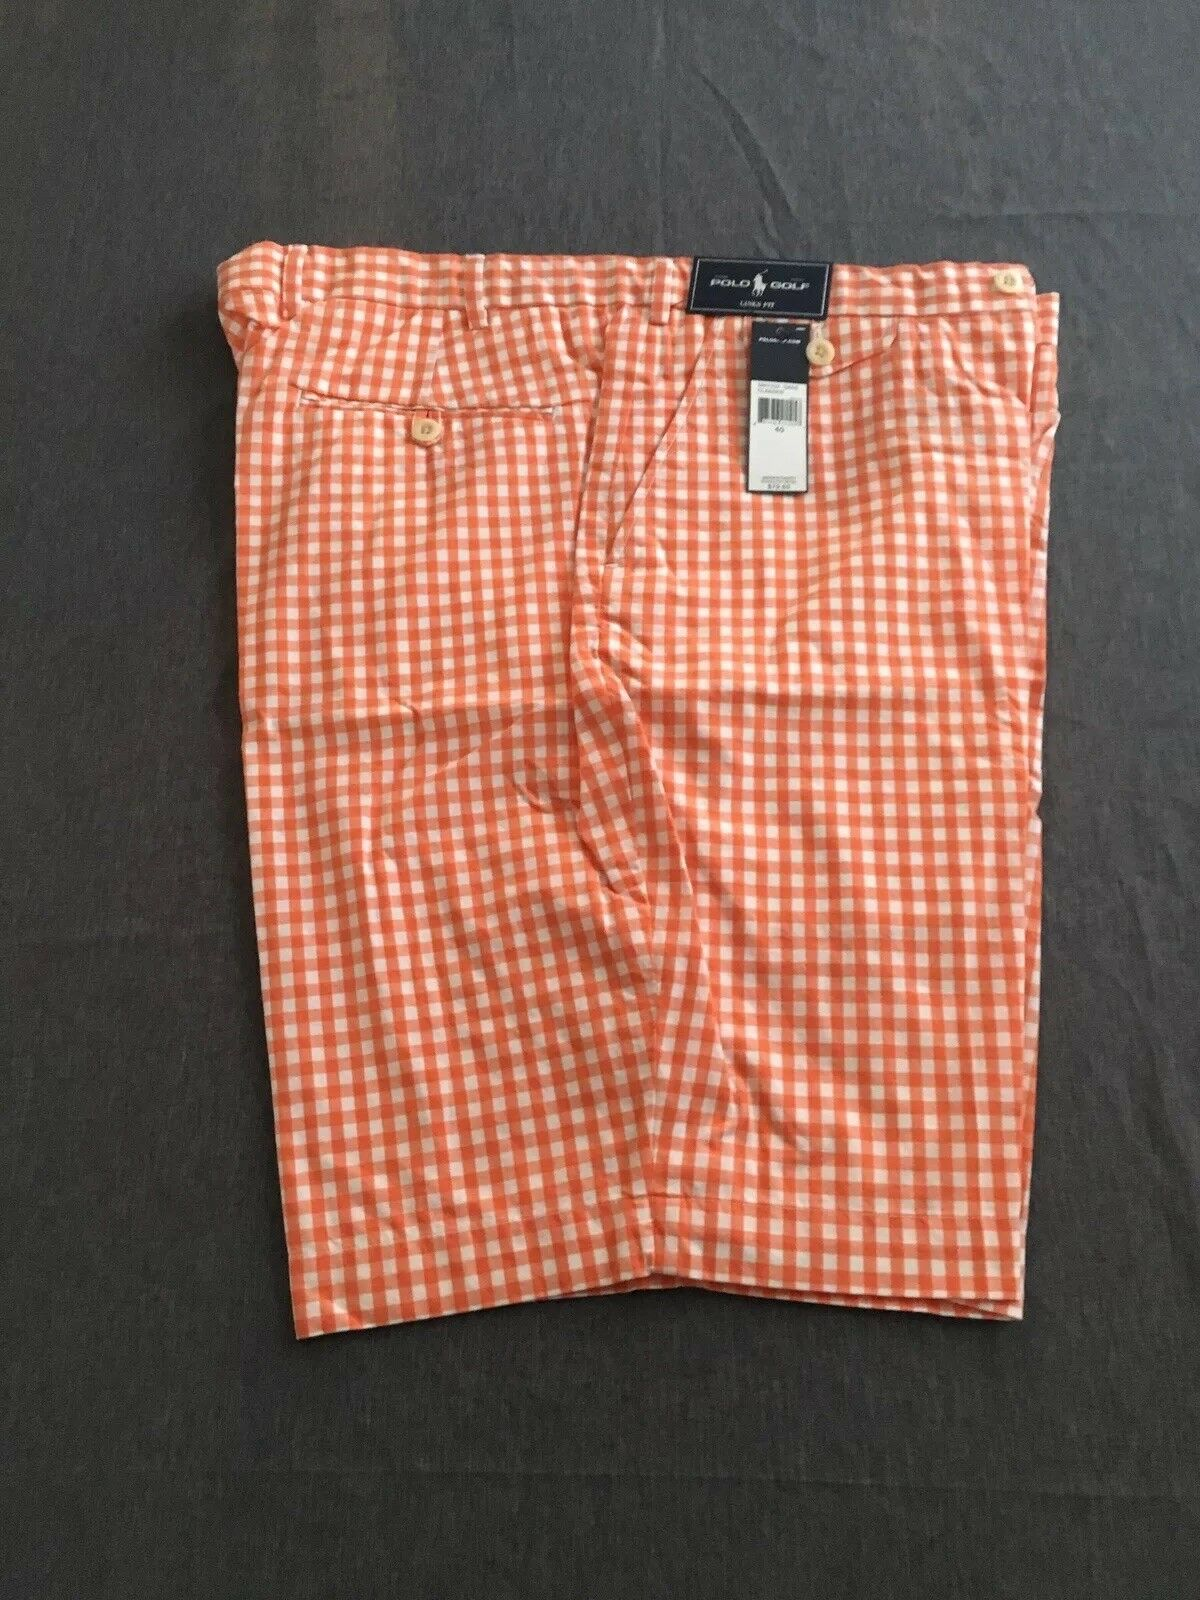 NWT Size 40 Polo by Ralph Lauren orange and White Shorts Retail